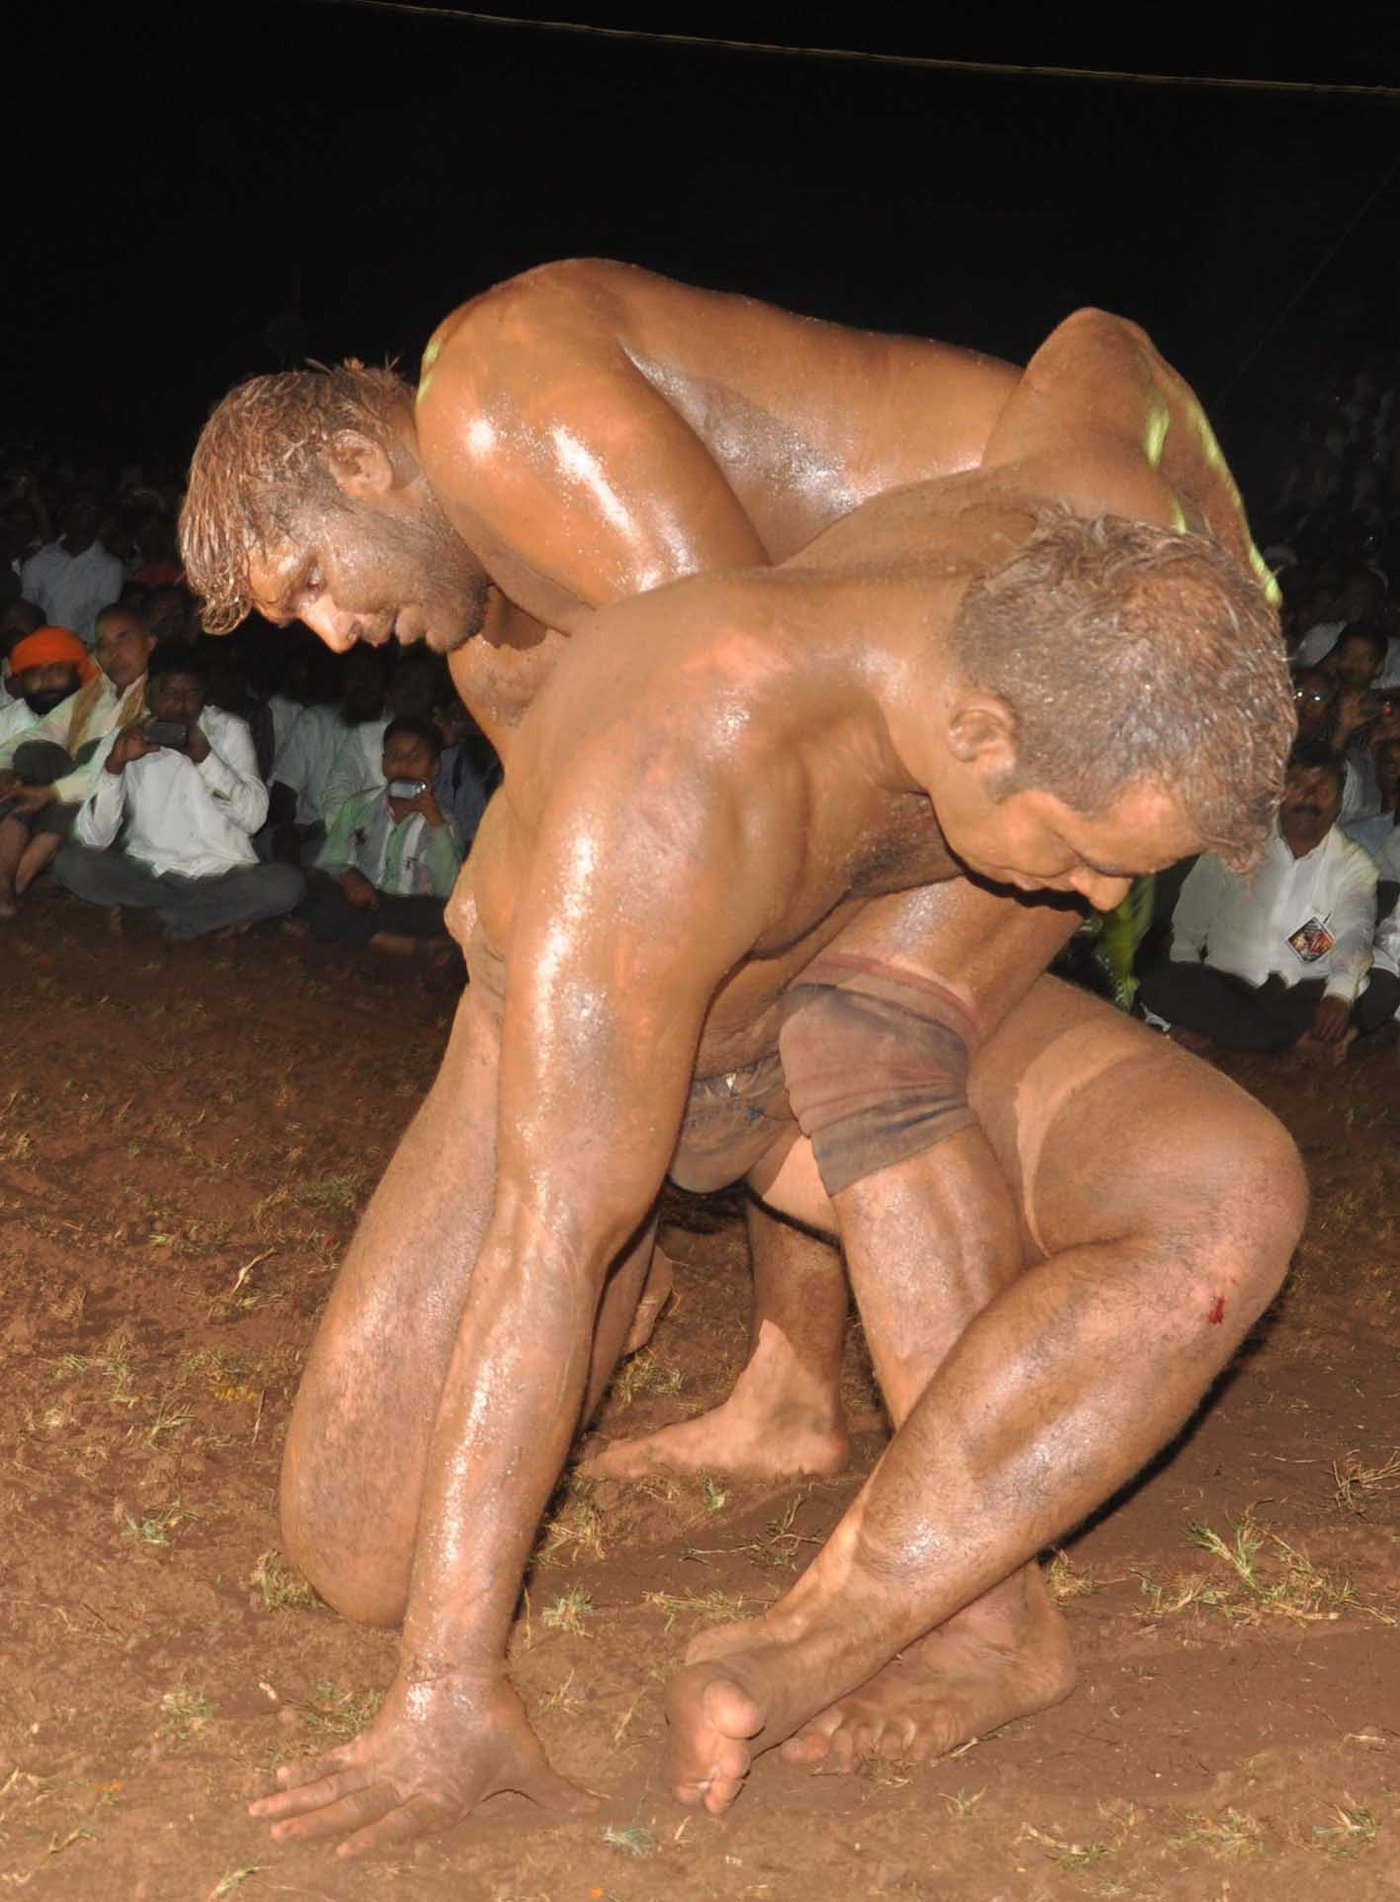 Two men wrestling in mud